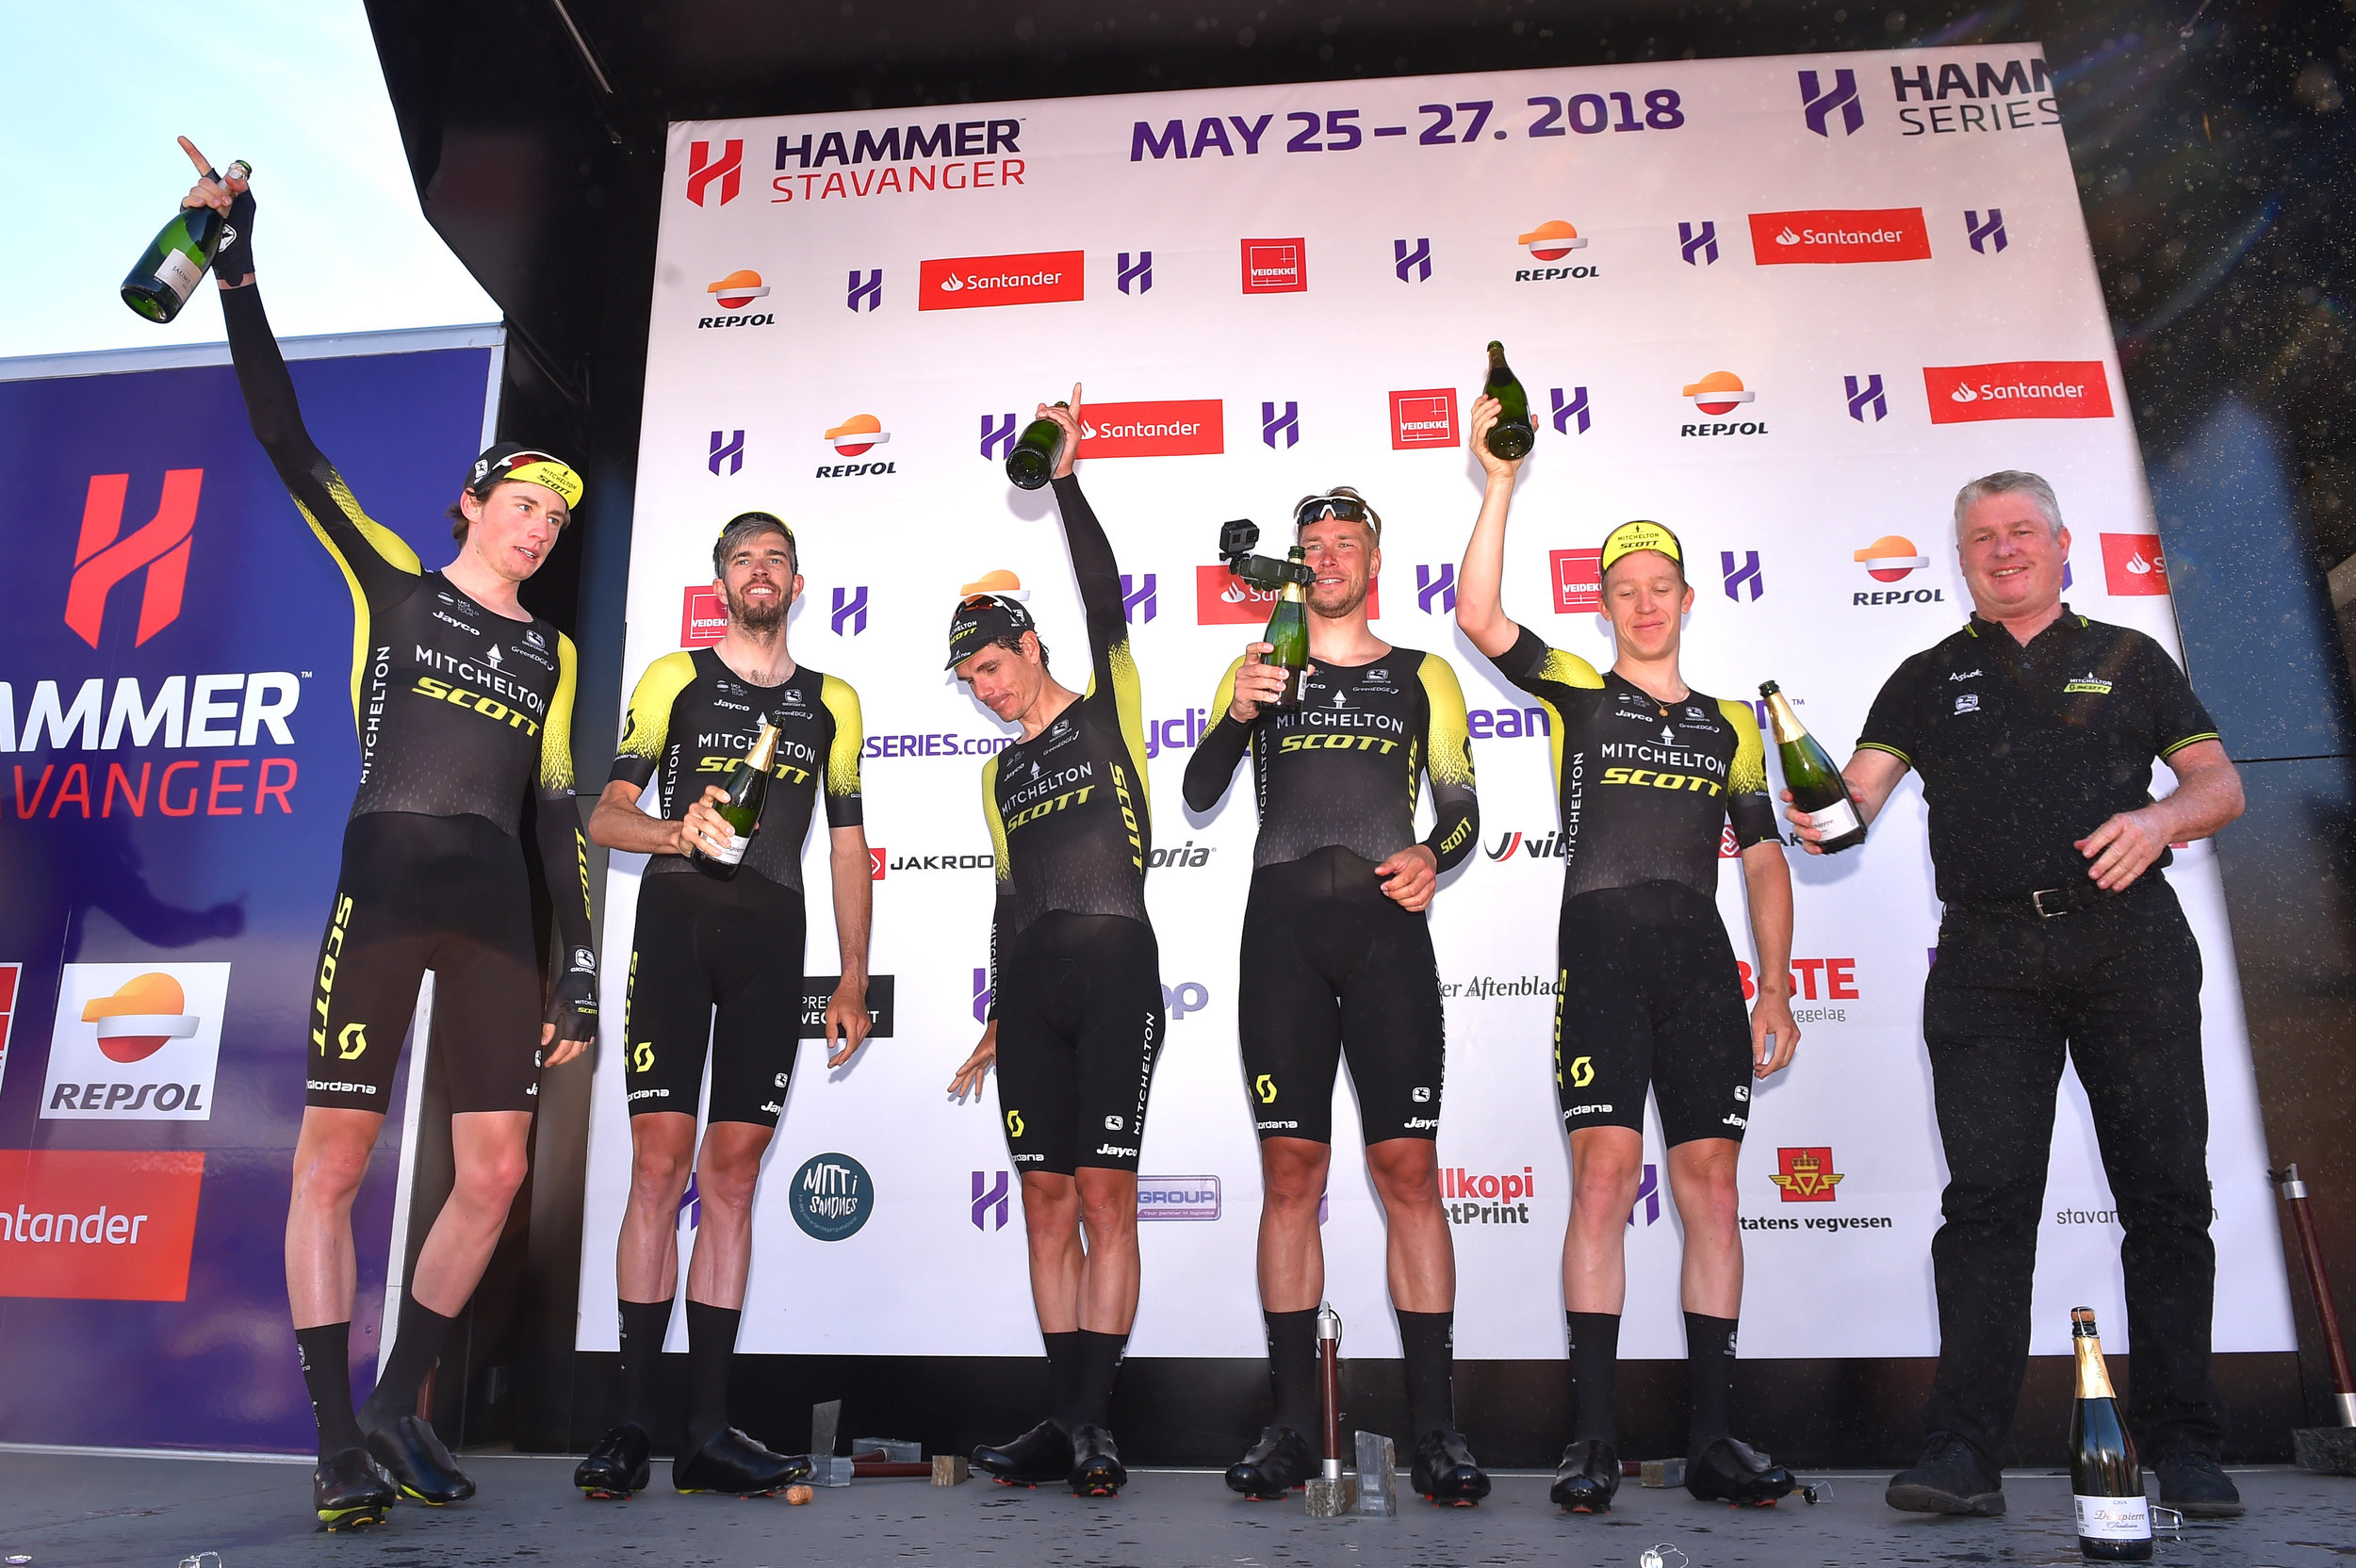 Champagne for Mitchelton-SCOTT on the podium at Hammer Stavanger in 2018 (Getty Images)